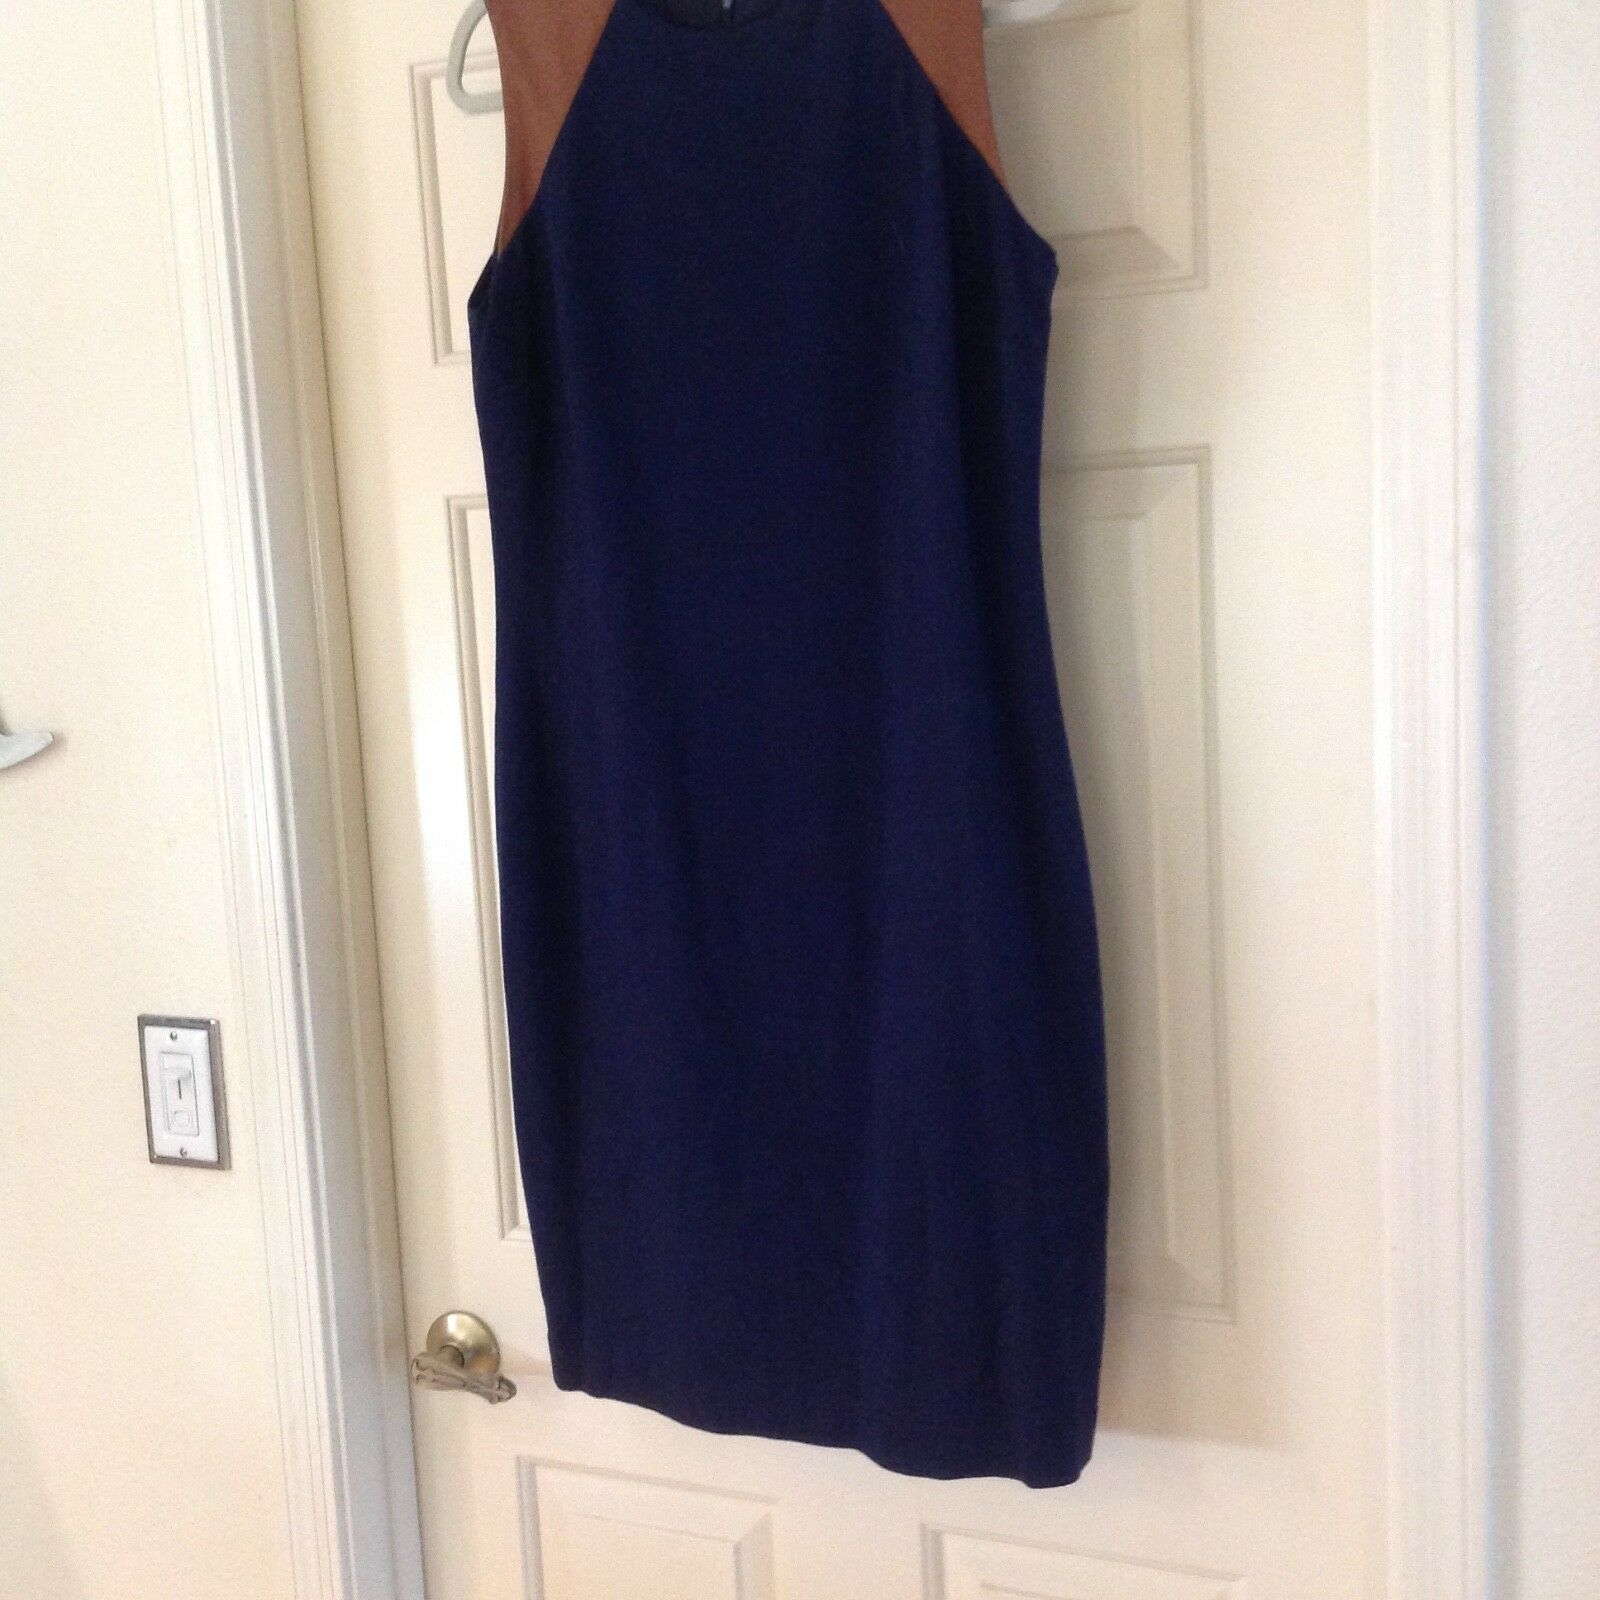 Lauren Ralph Lauren Navy Dress w leather trim. Size 12. Stunning